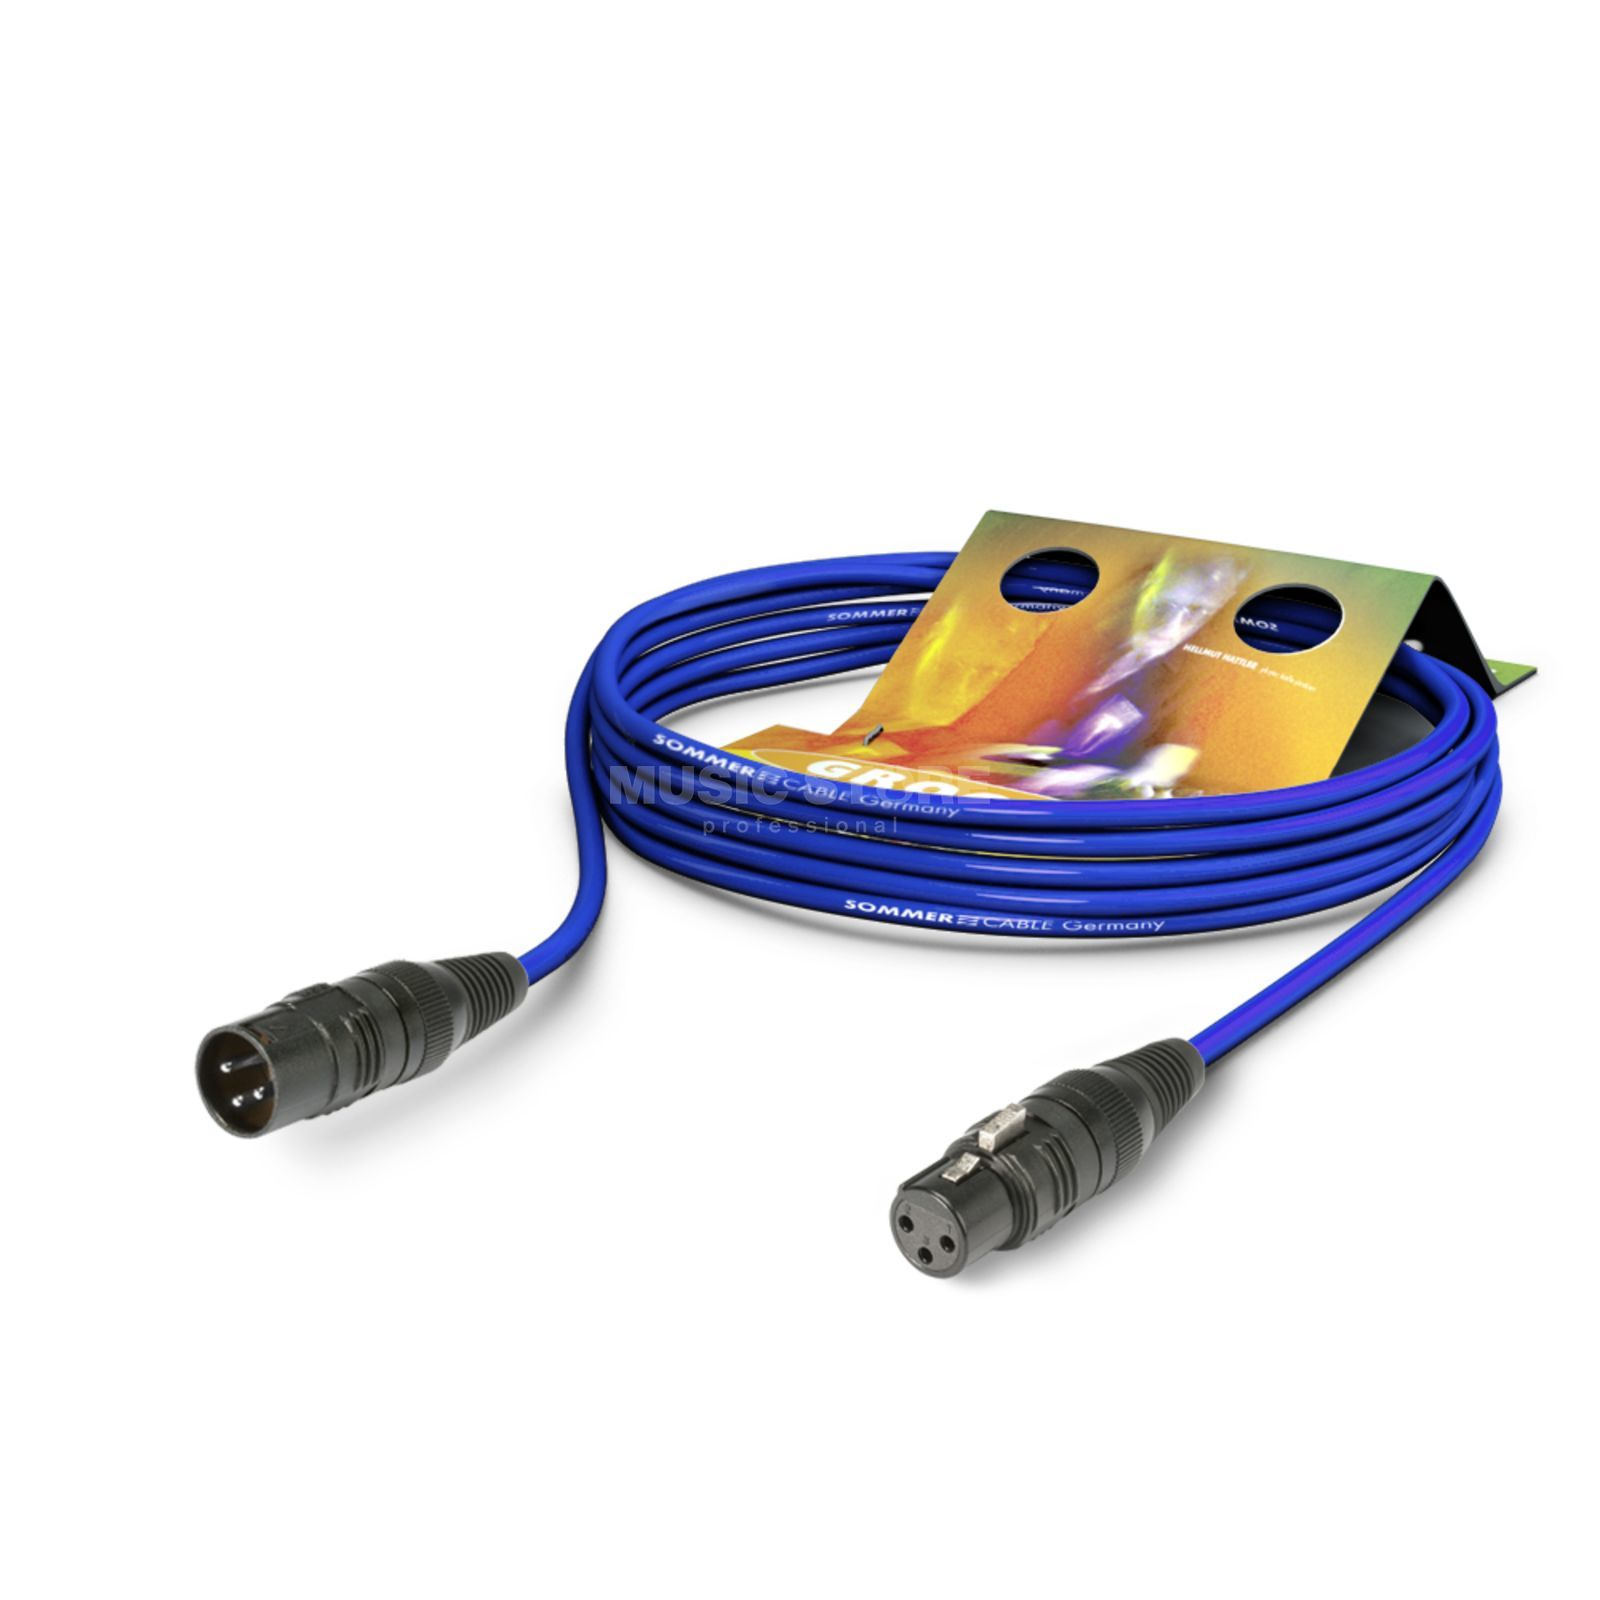 Sommer Cable SGCE-1000 BL Microphone Cable 10m blue, HICON Produktbillede